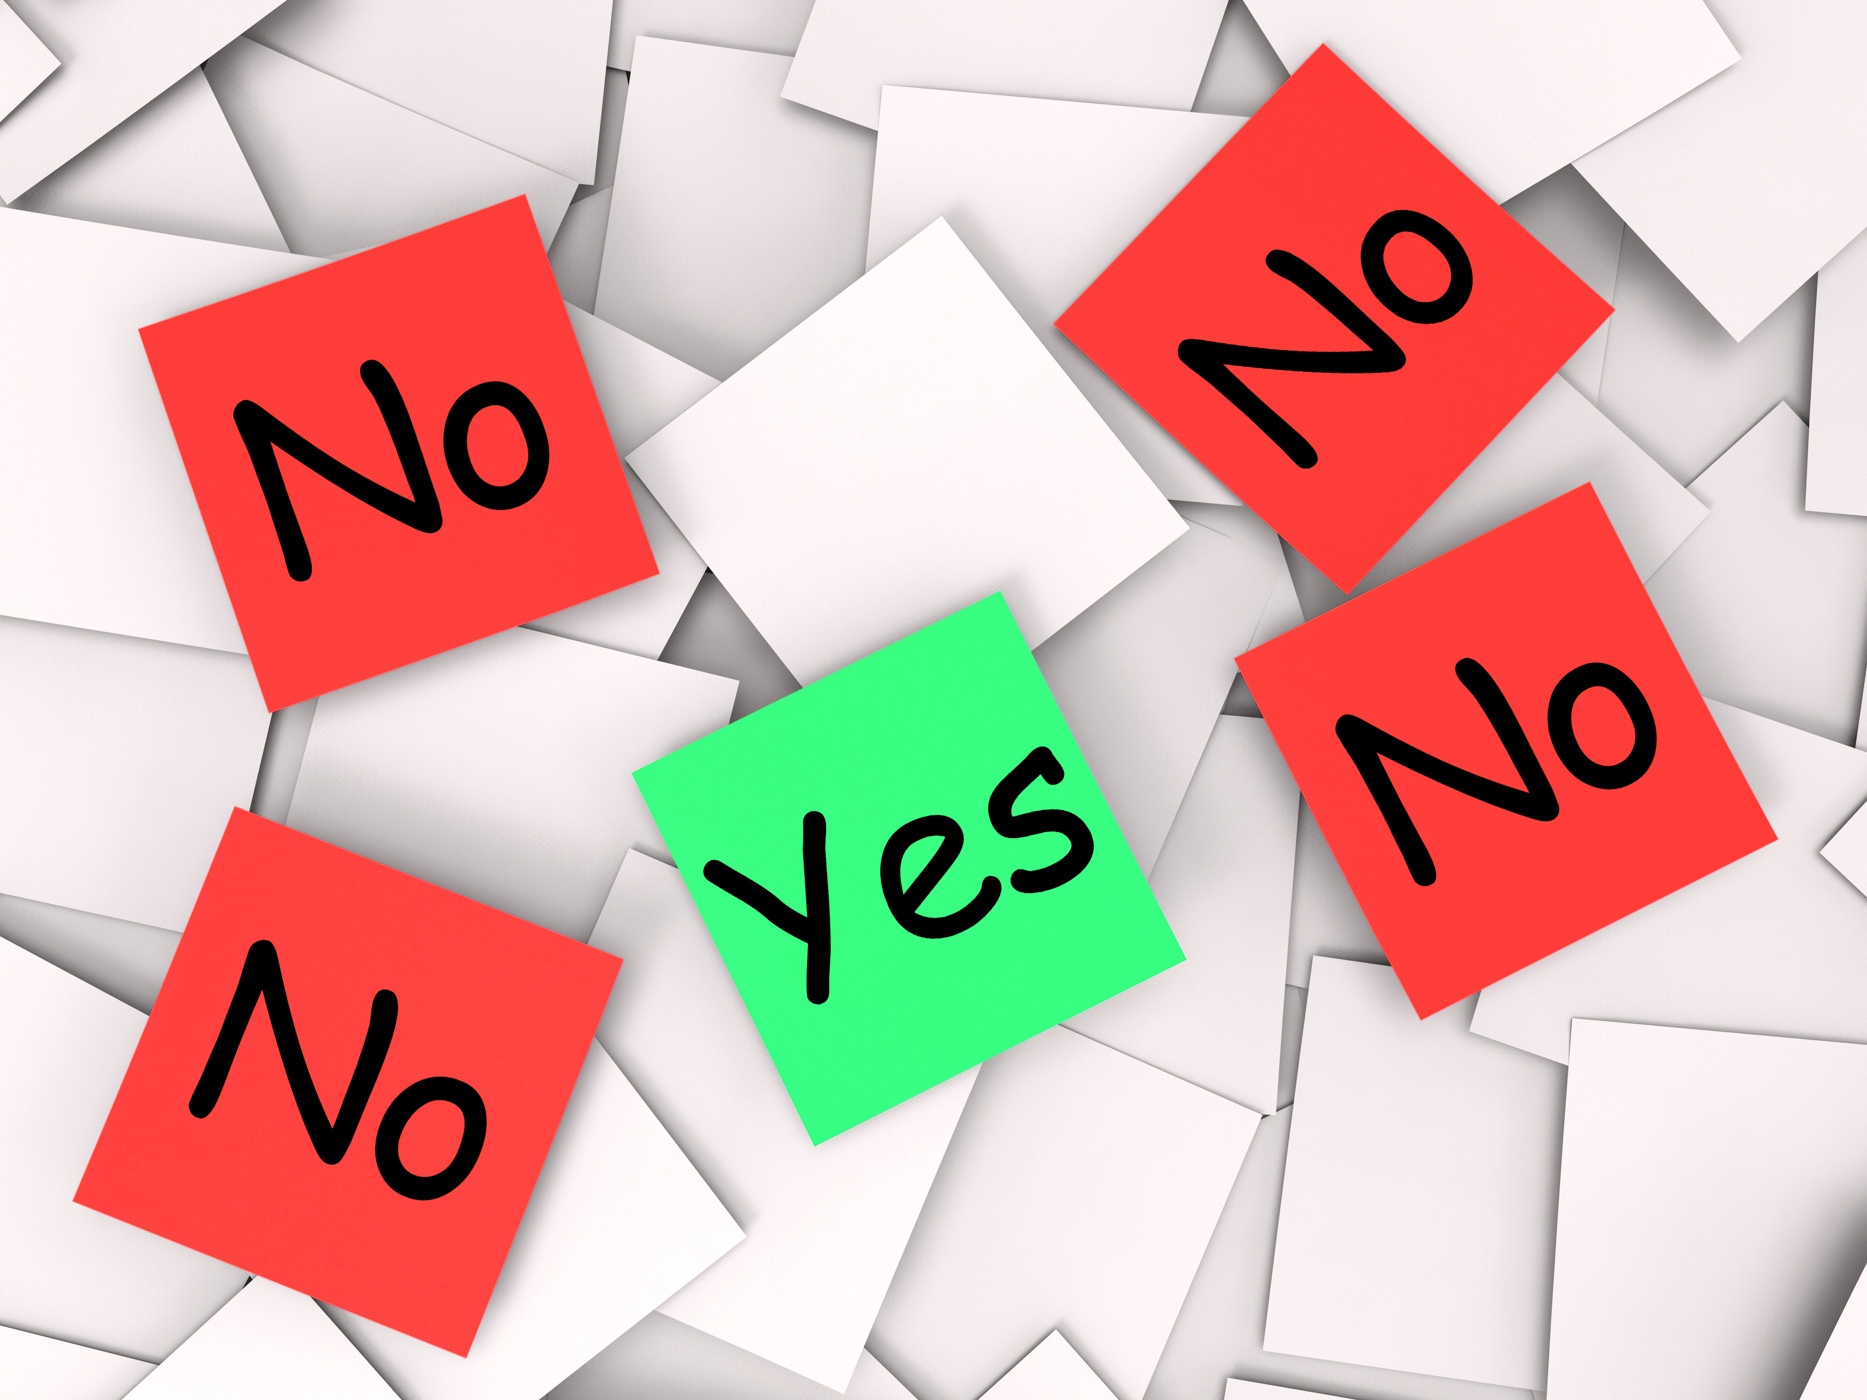 Yes no post-it notes mean positive or declining photo